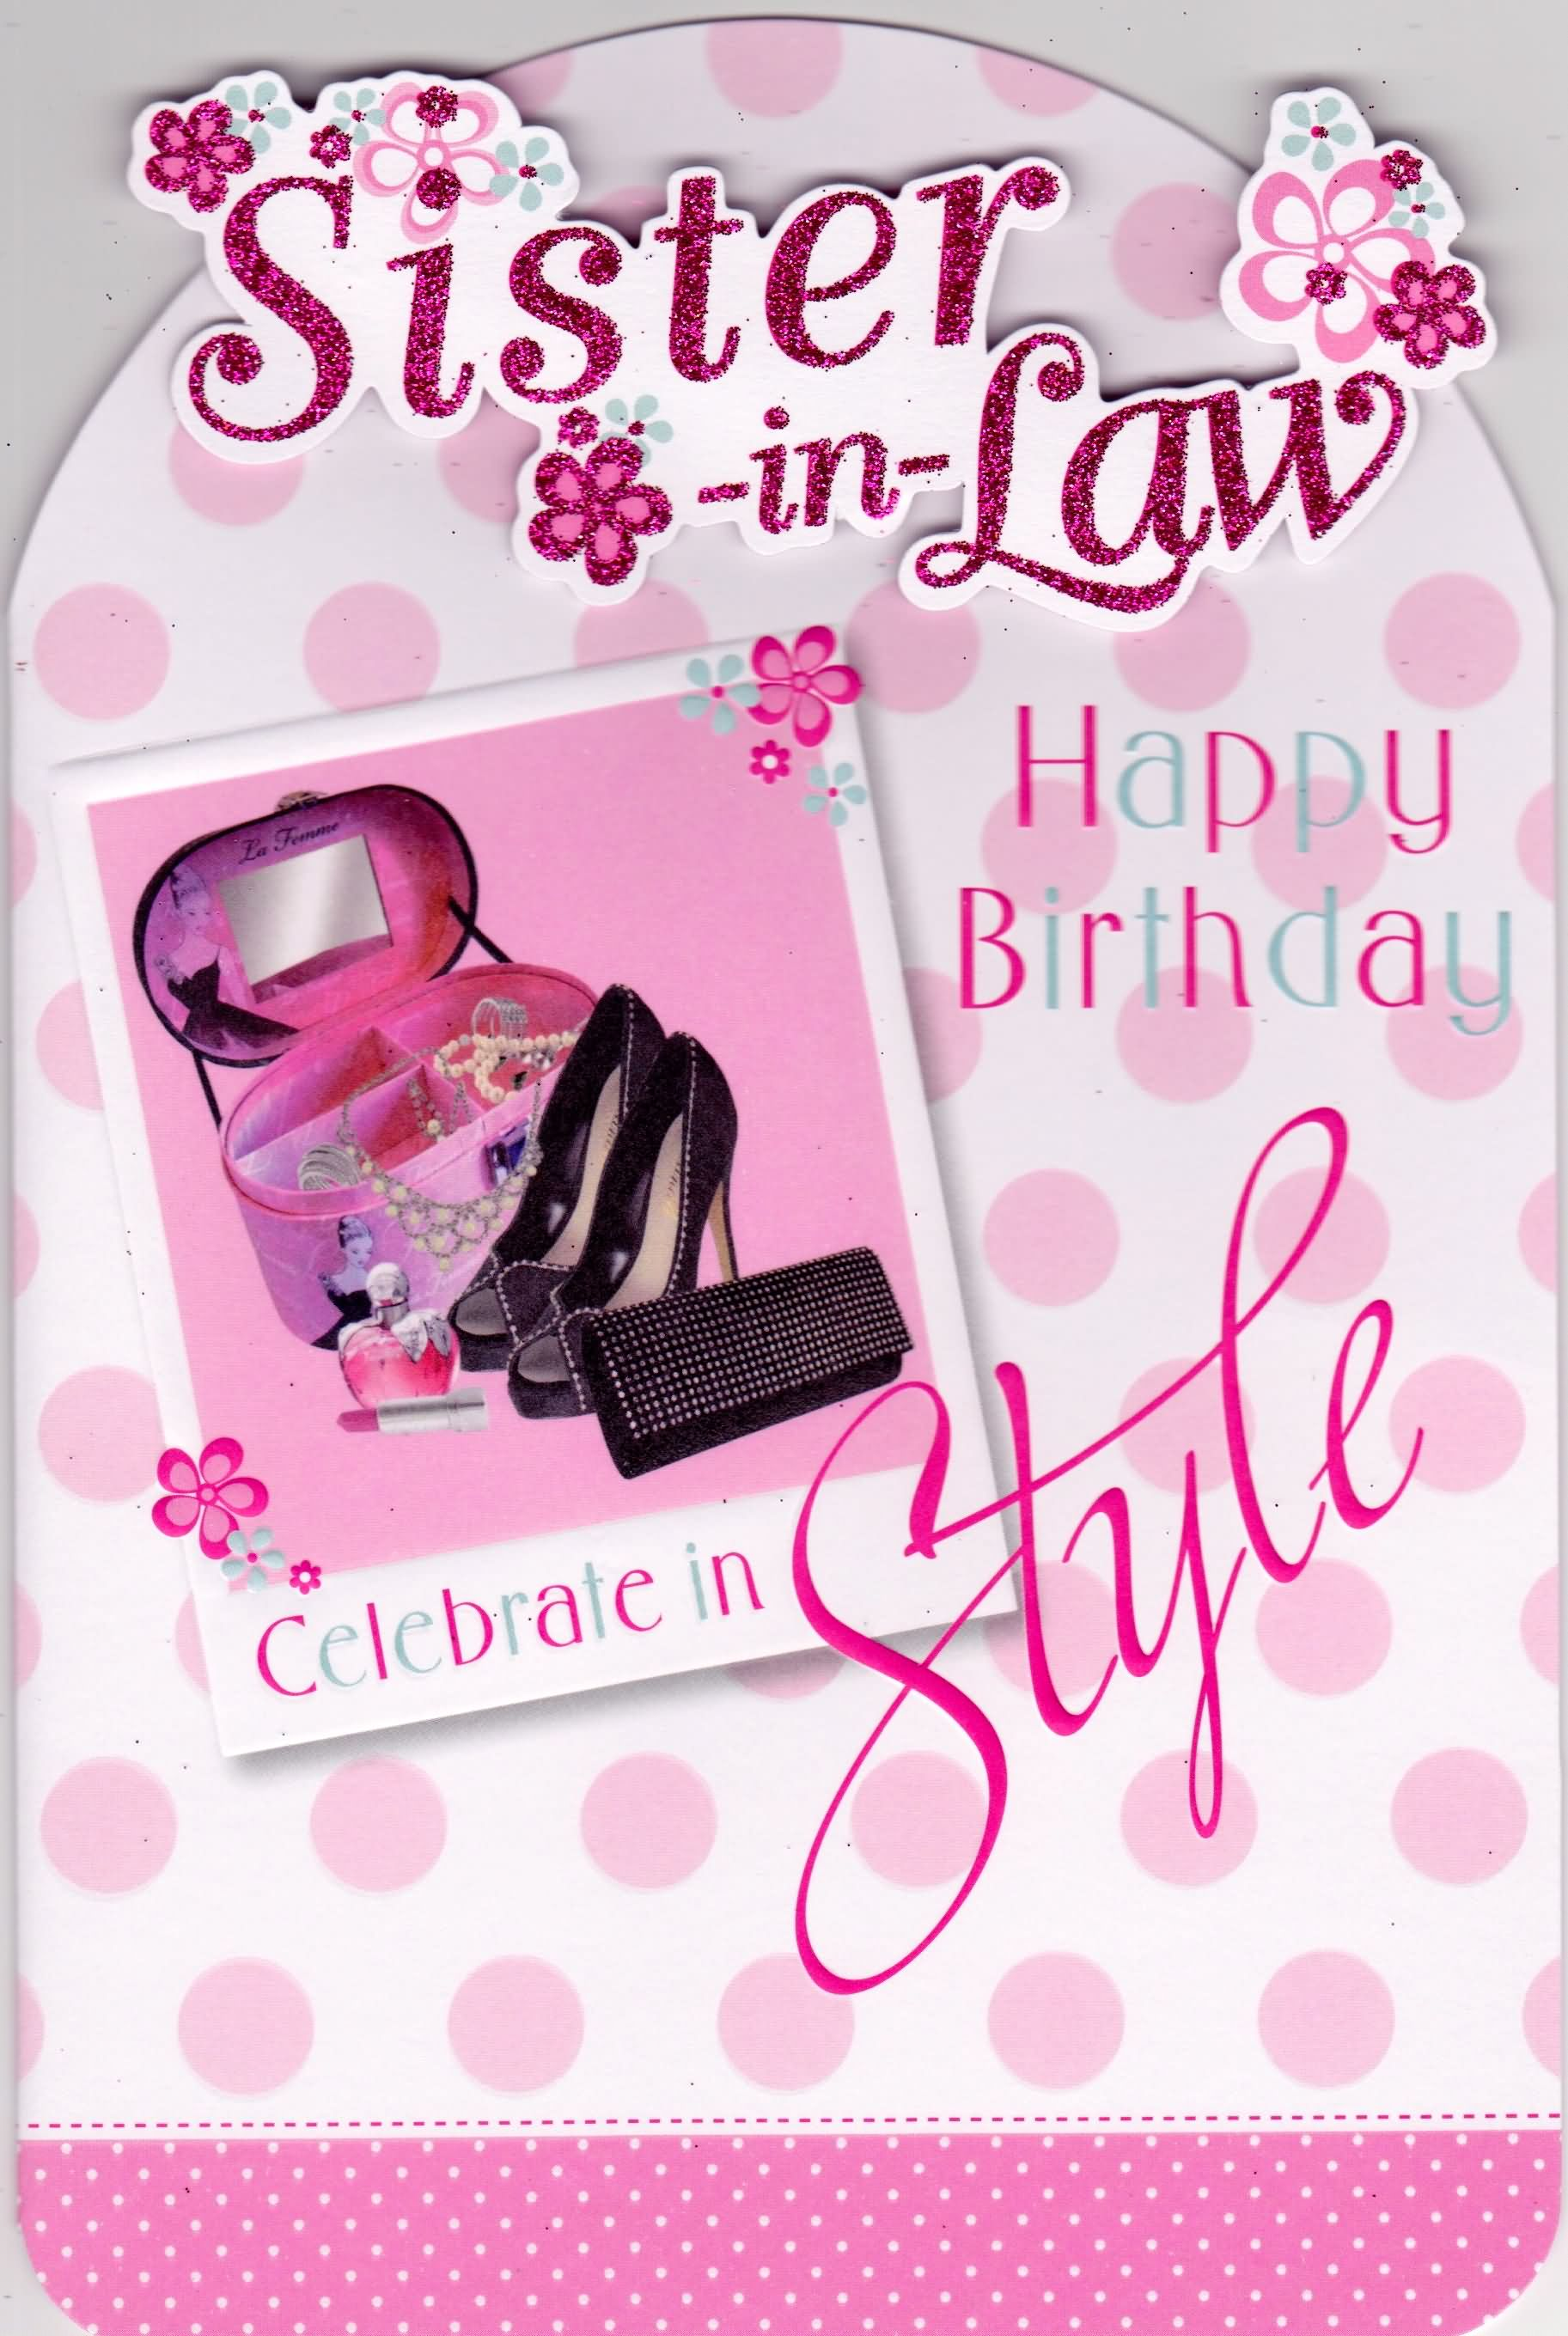 happy birthday greeting cards for sister in law ; 17b06e8b7bf1d1bce77d9eefbb3d855d